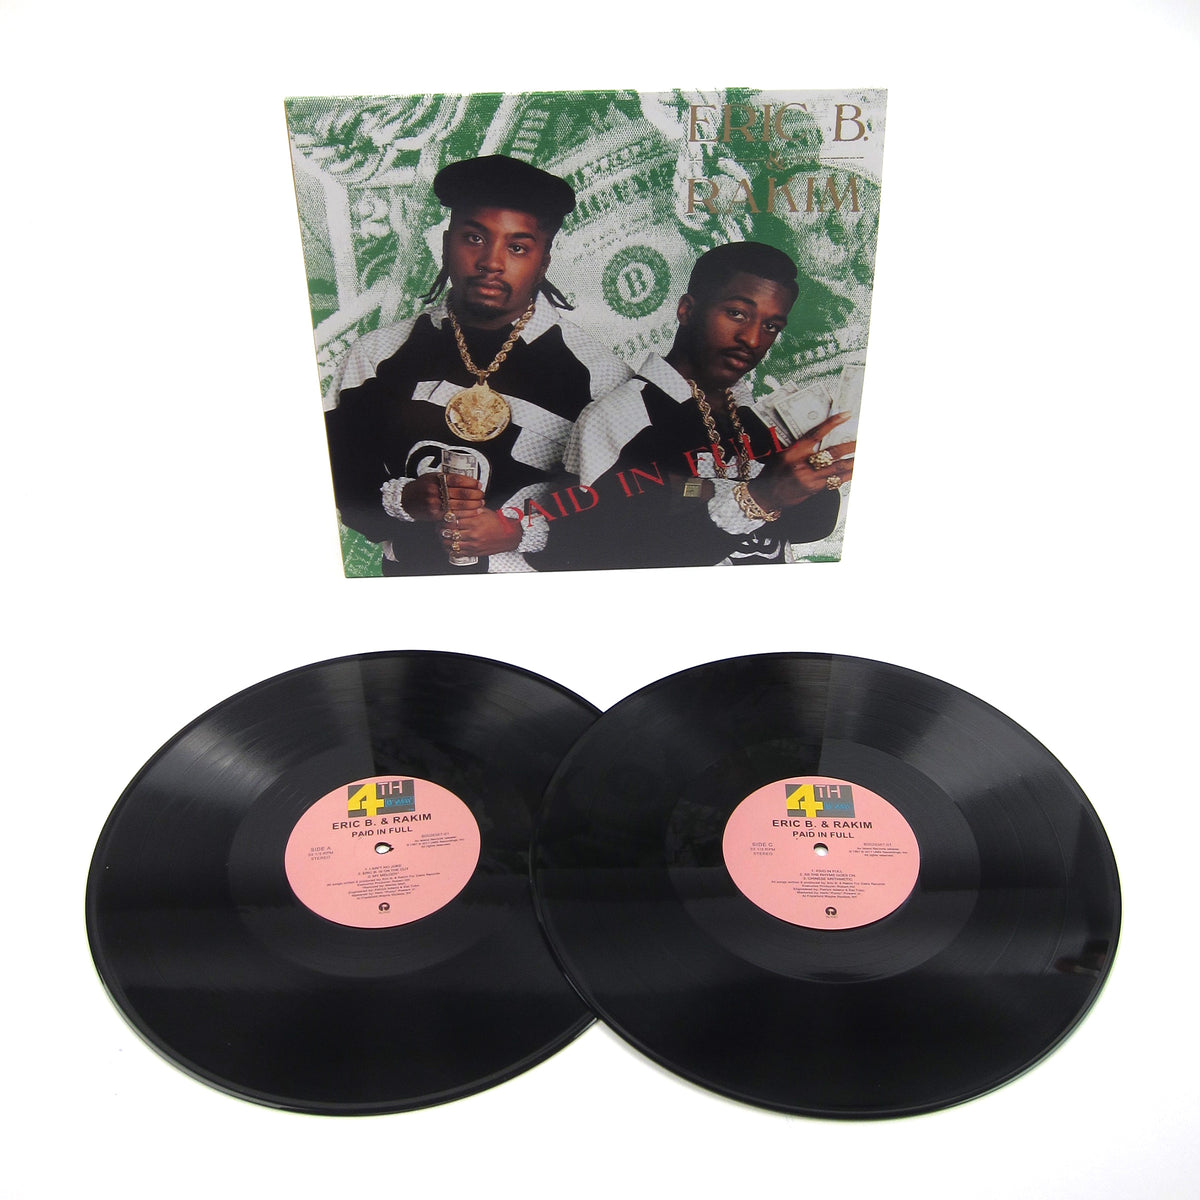 Eric B. & Rakim: Paid In Full Vinyl 2LP